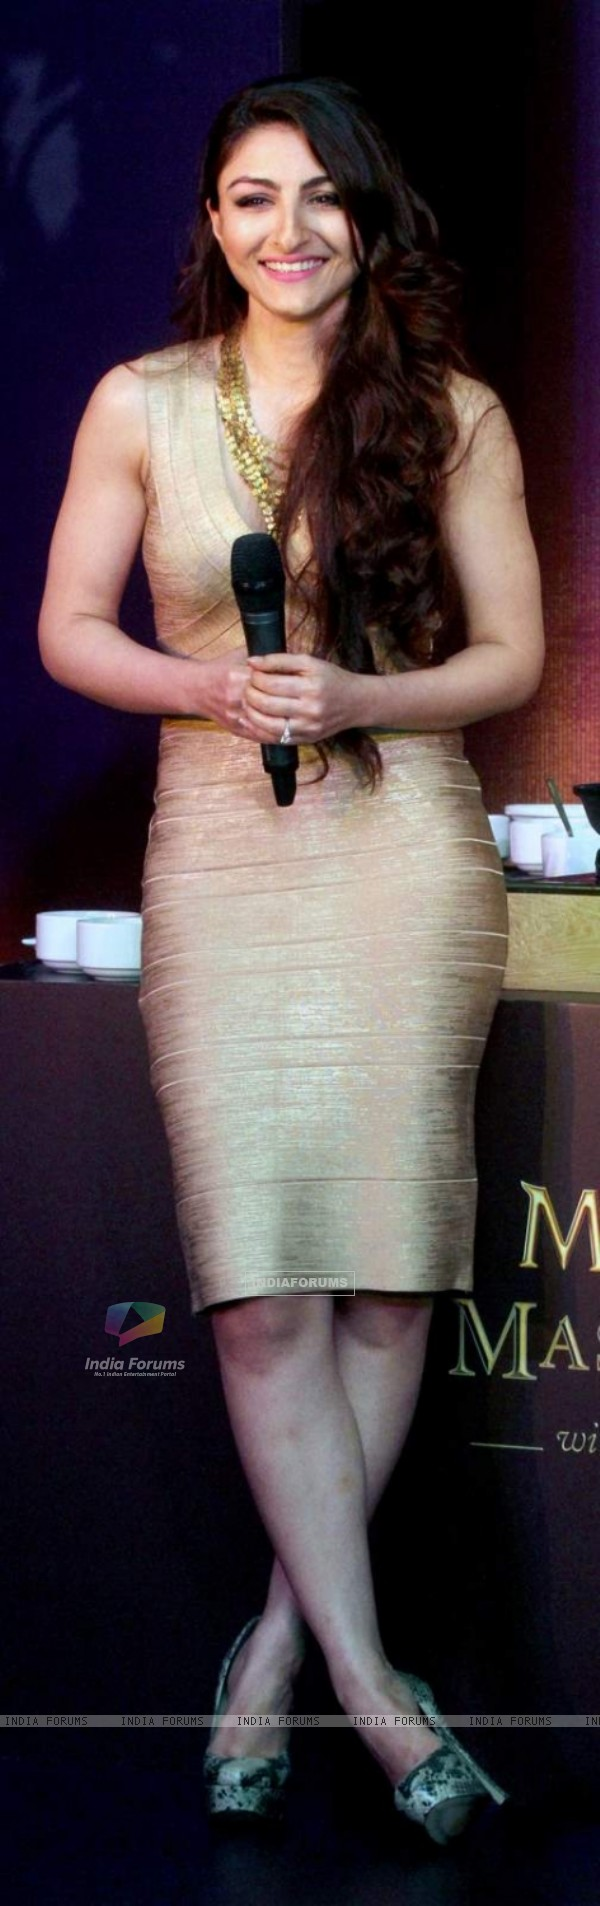 Soha Ali Khan was snapped at Magnum Promotional Event